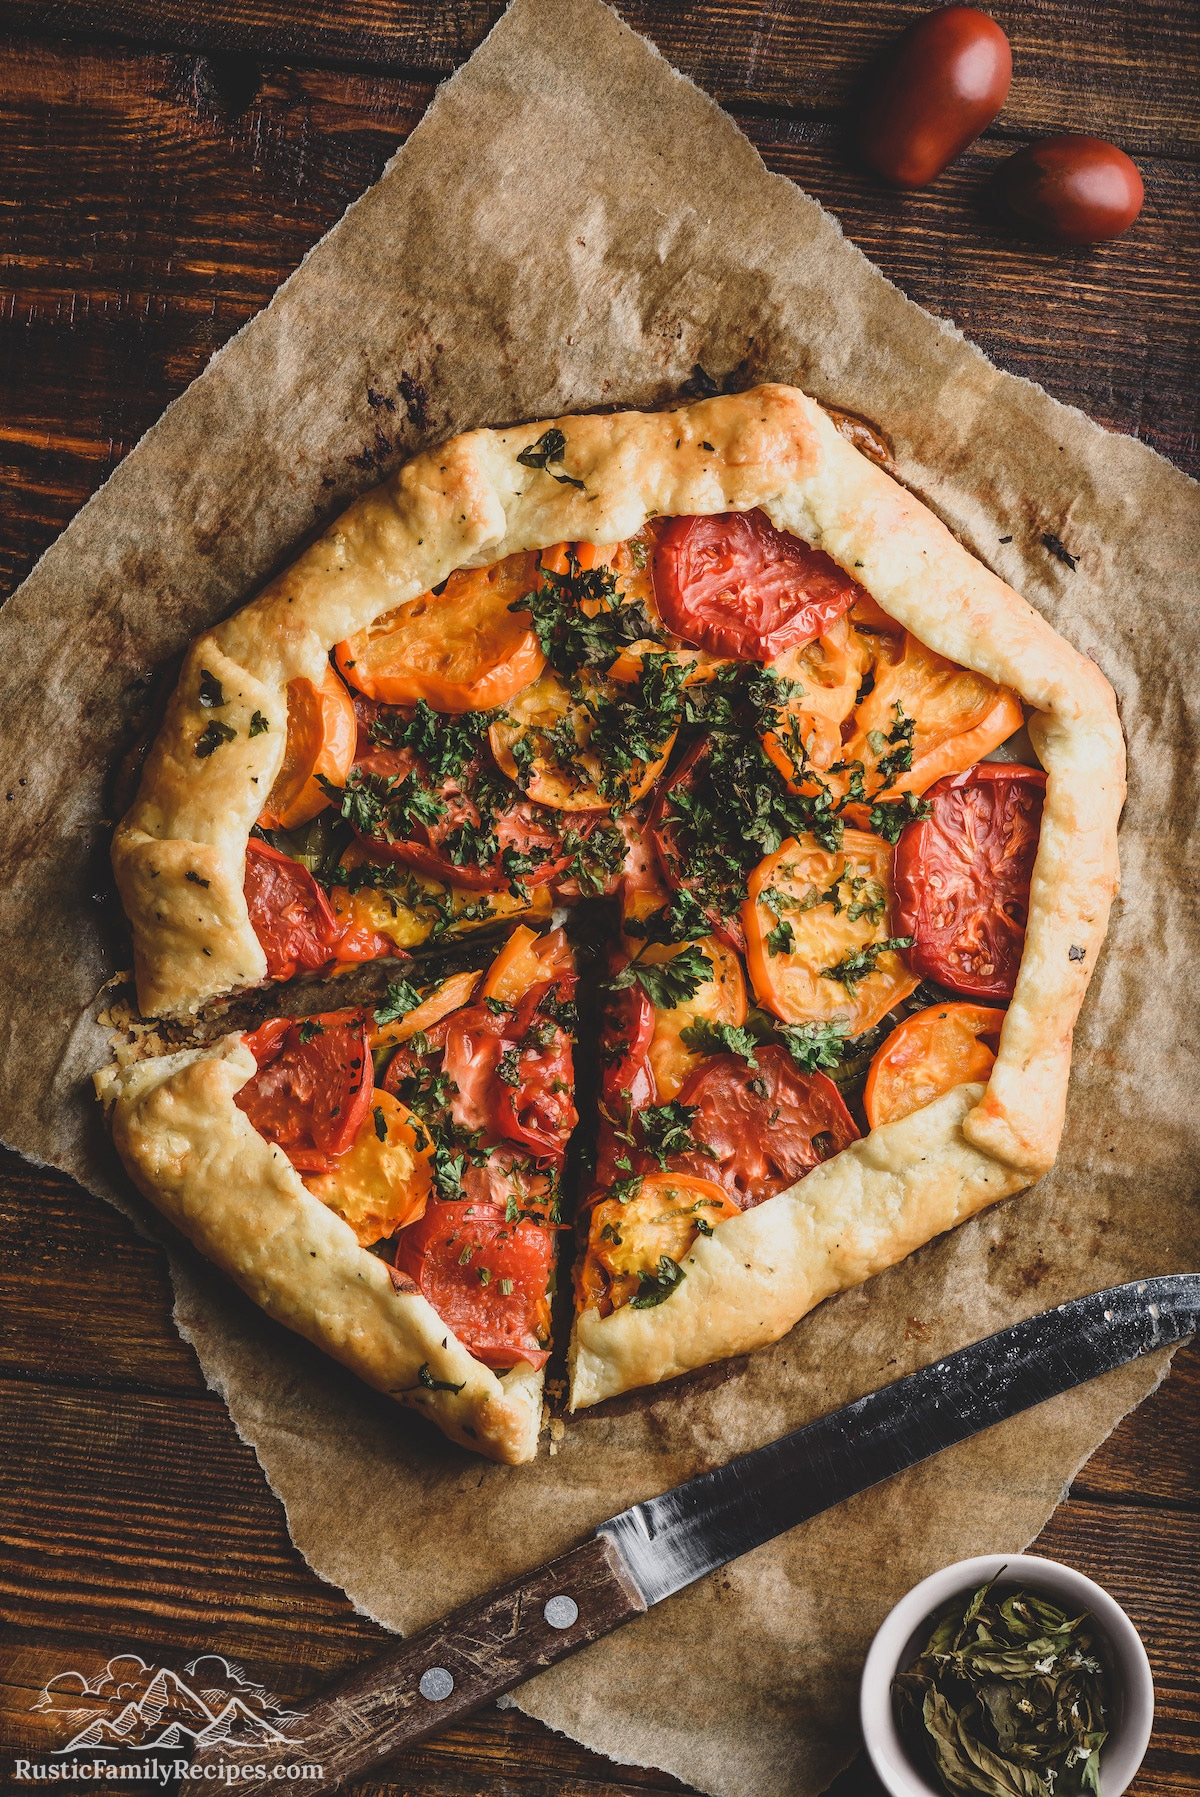 Rustic tomato galette with a slice taken out